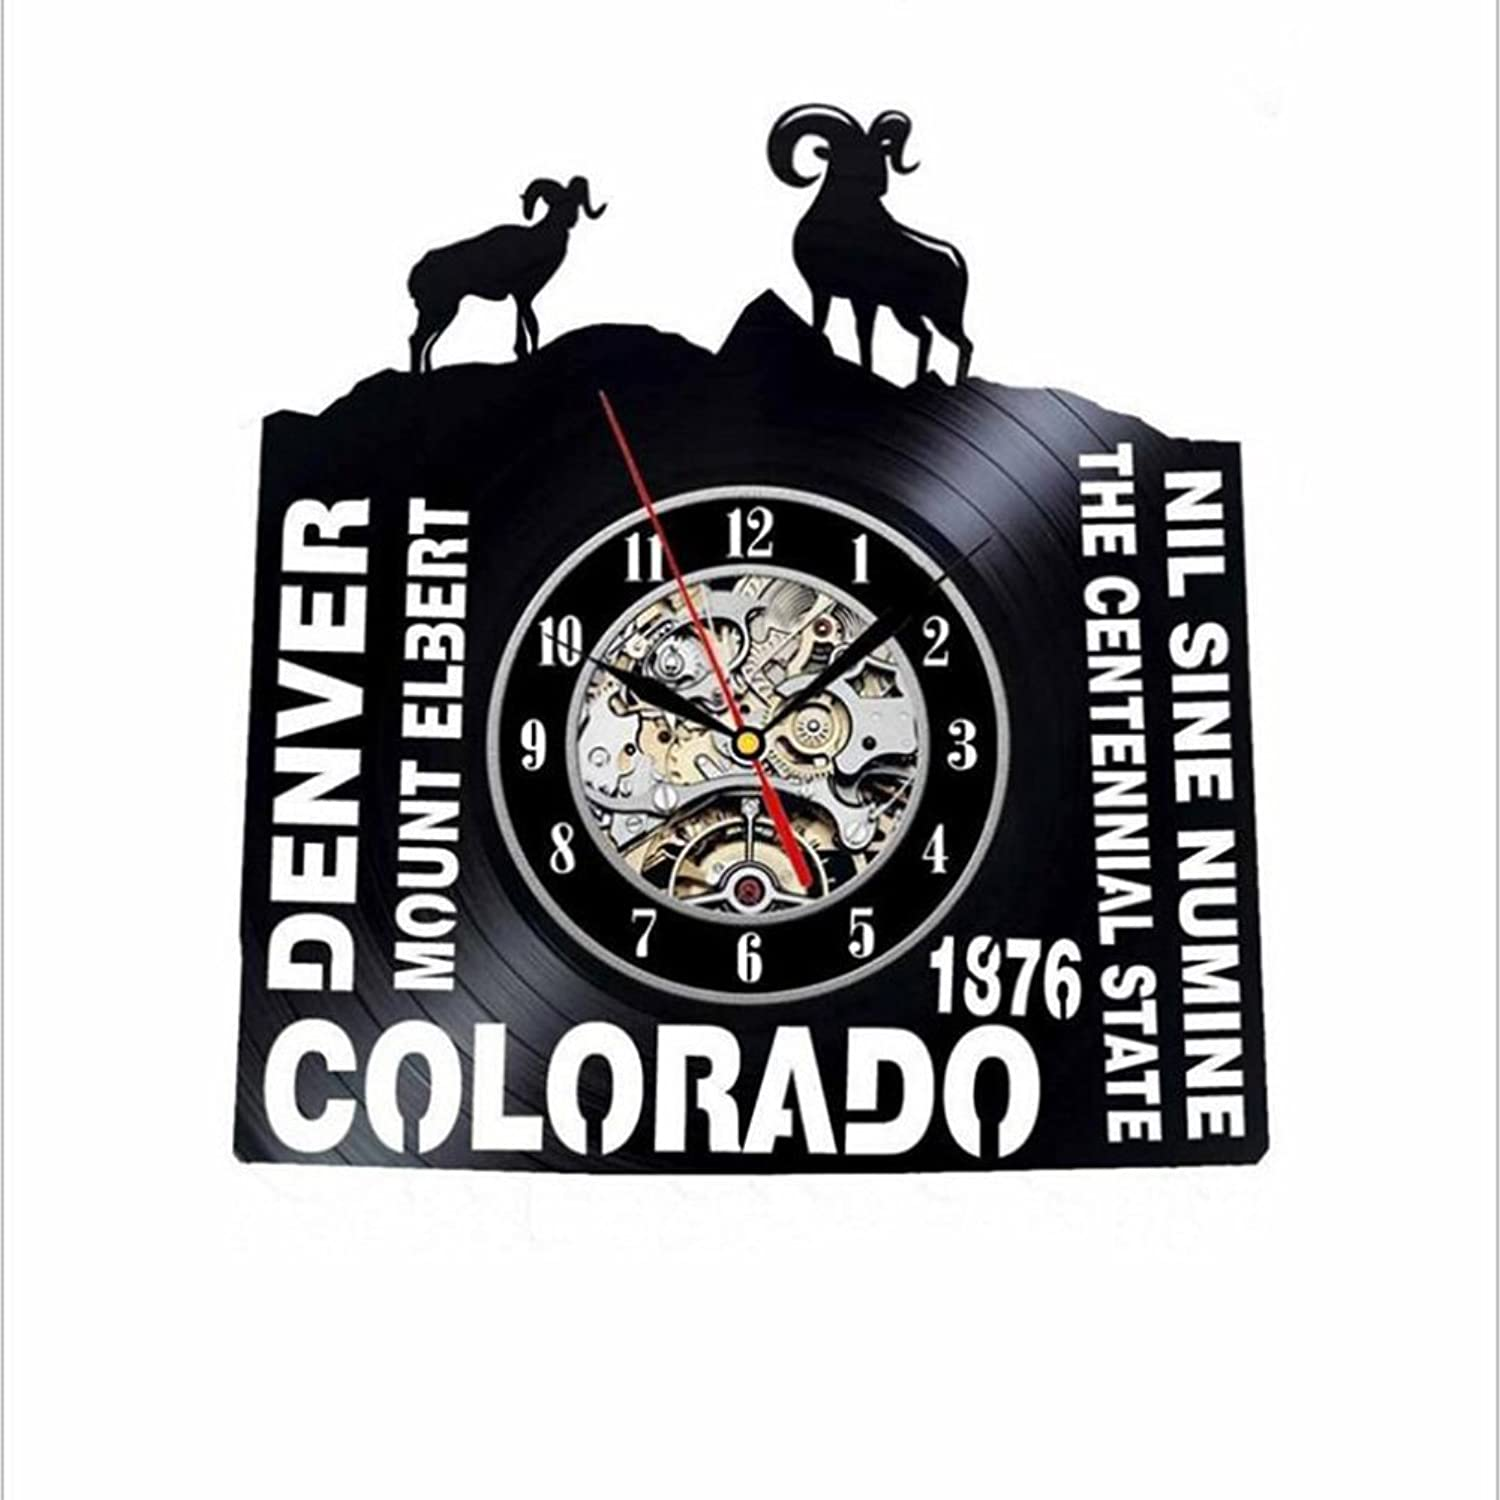 Vinyl Record Wall Clock colorado United States 3D European Epidemic for Living Rooms Kitchens and Bedrooms Decor Style Art